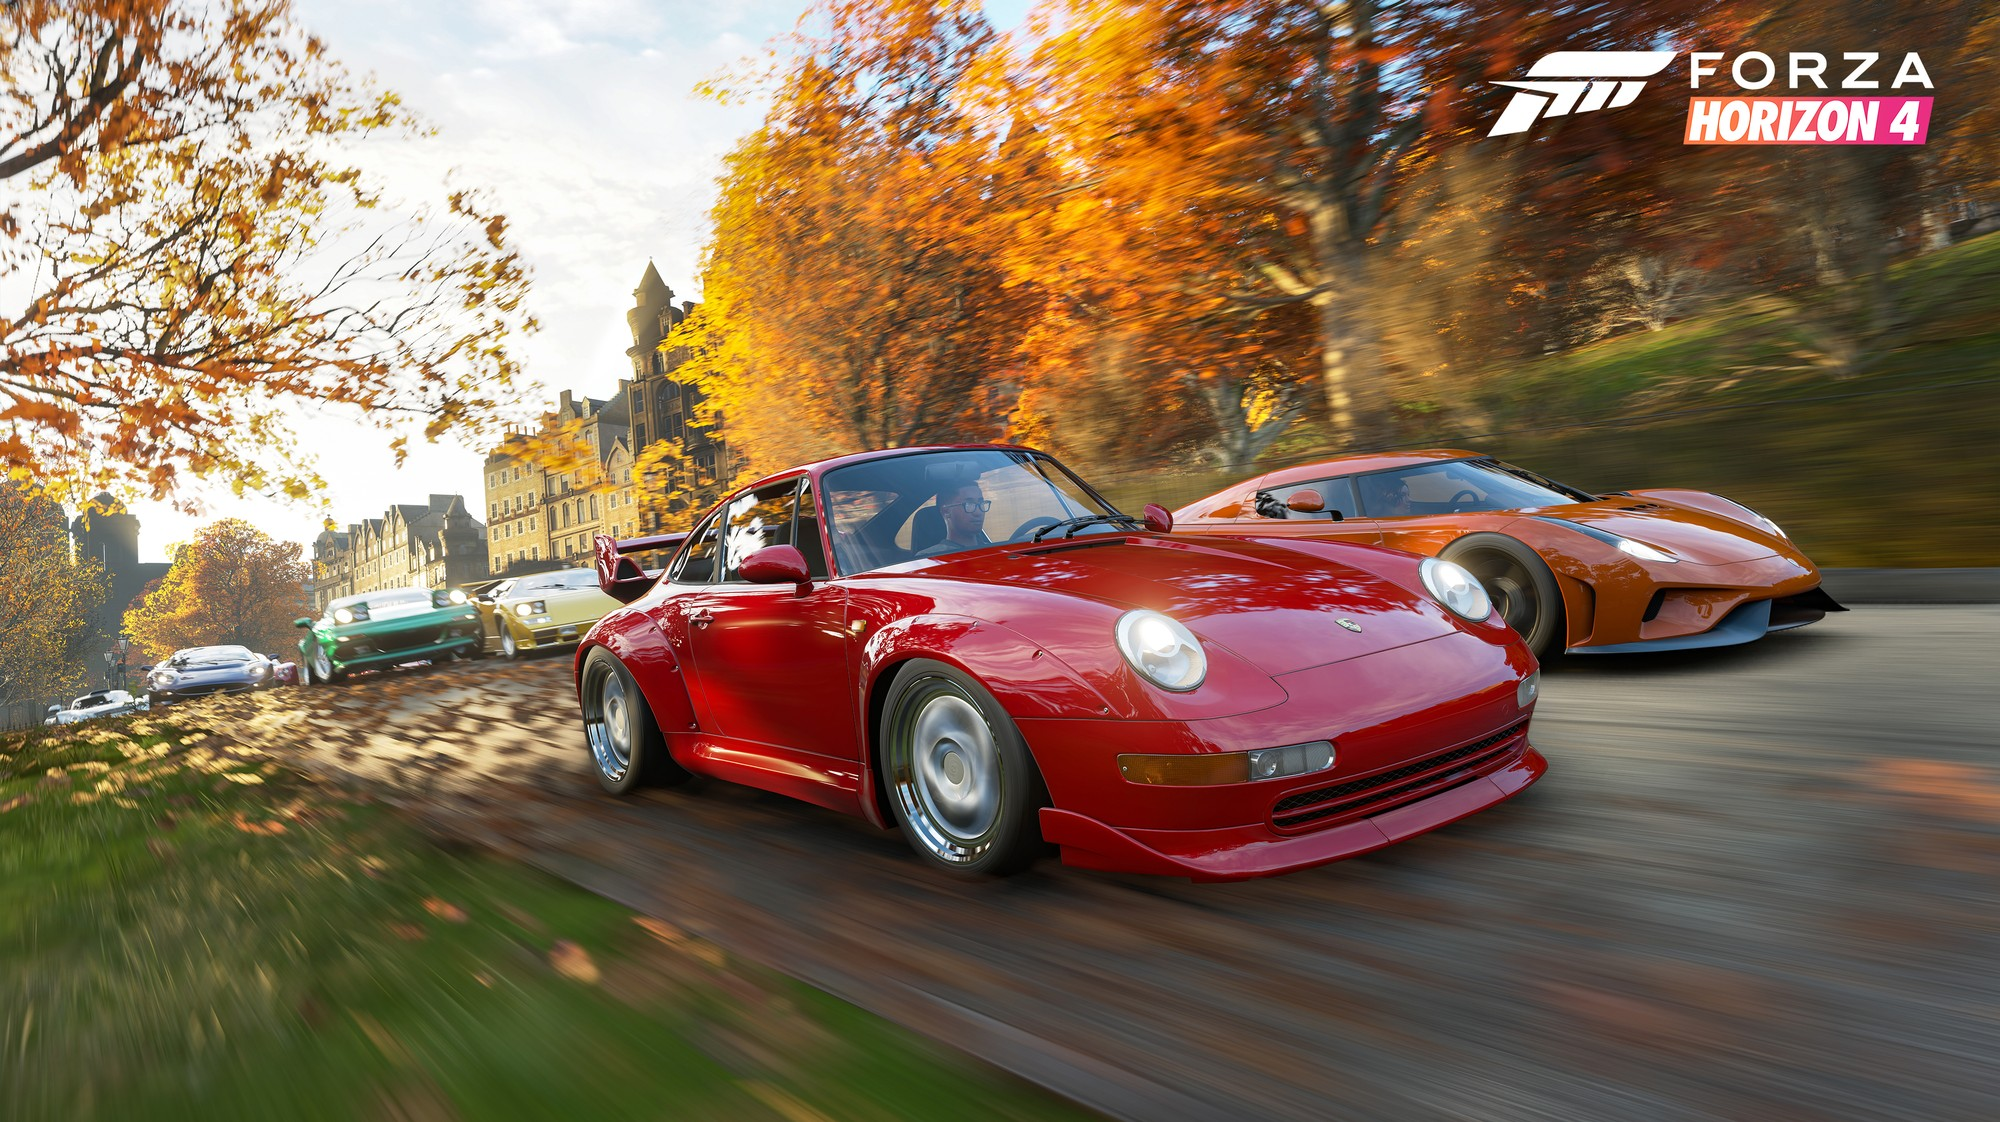 The Best Parts of 'Forza Horizon 4' Have Nothing to Do with